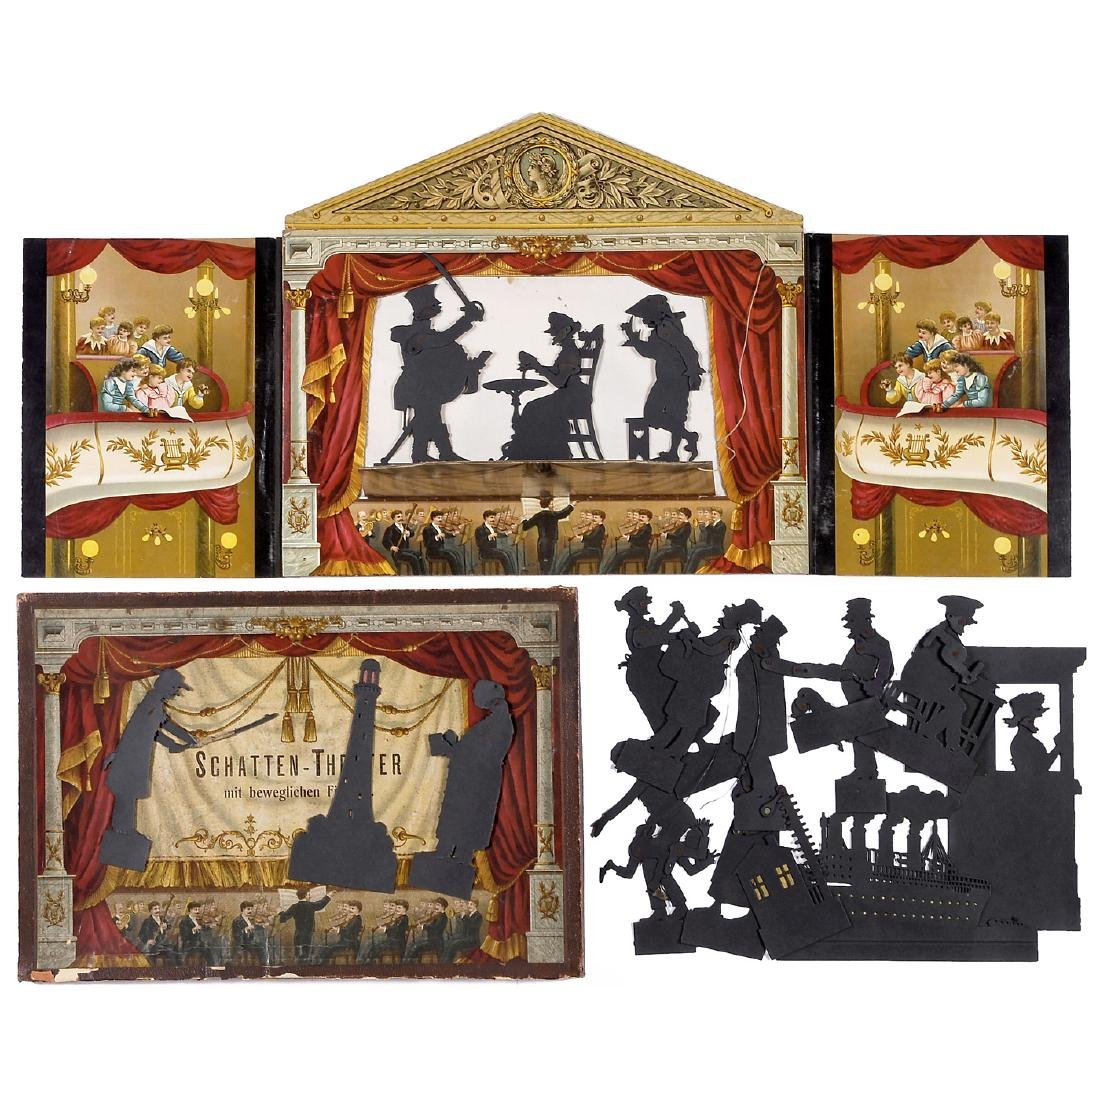 Shadow Theater, 1860-1880 - 2